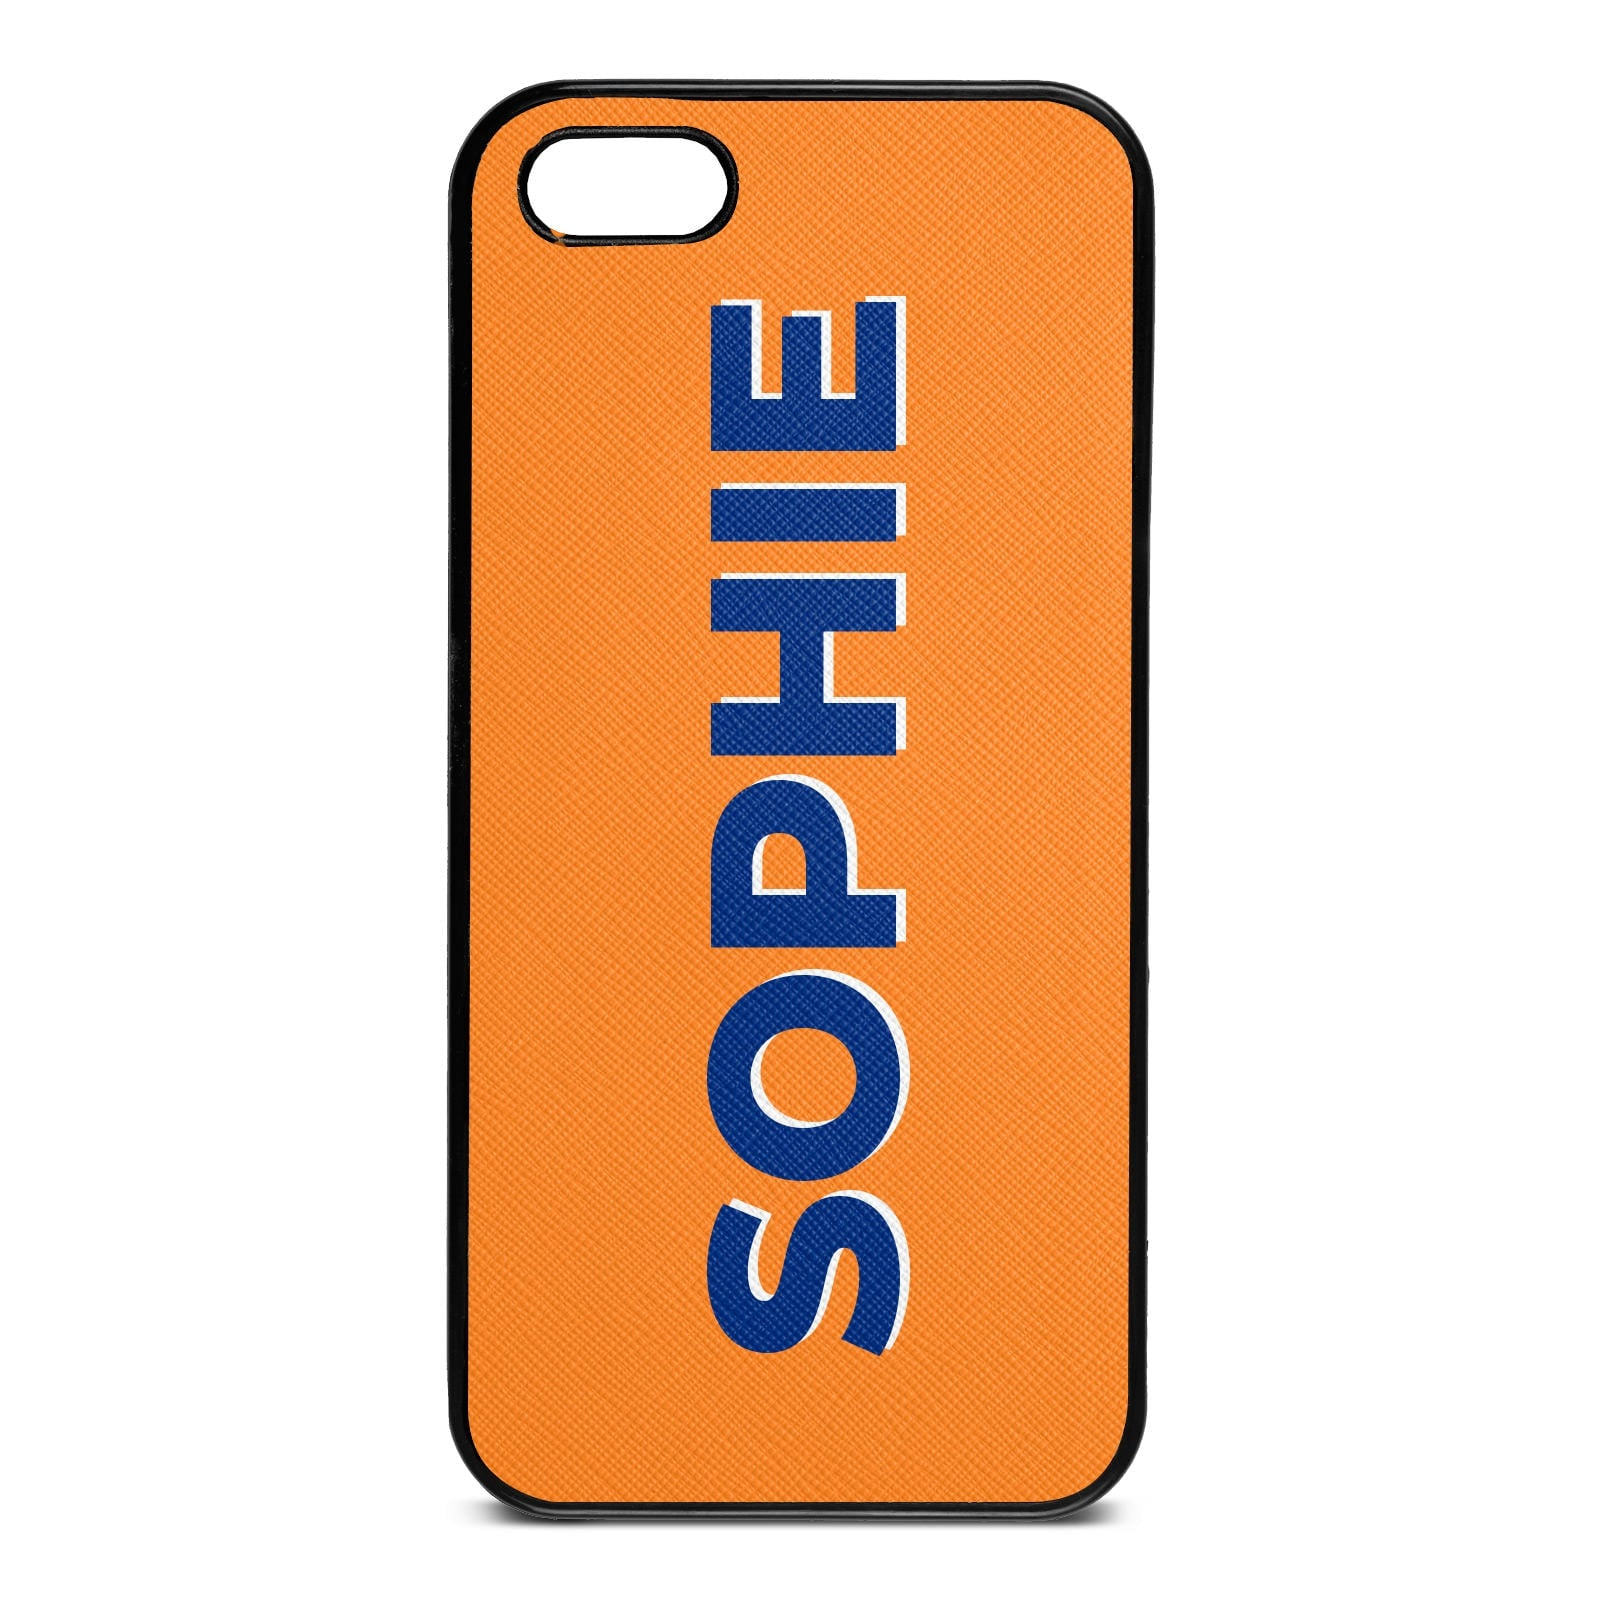 Personalised Saffron Saffiano Leather iPhone 5 Case